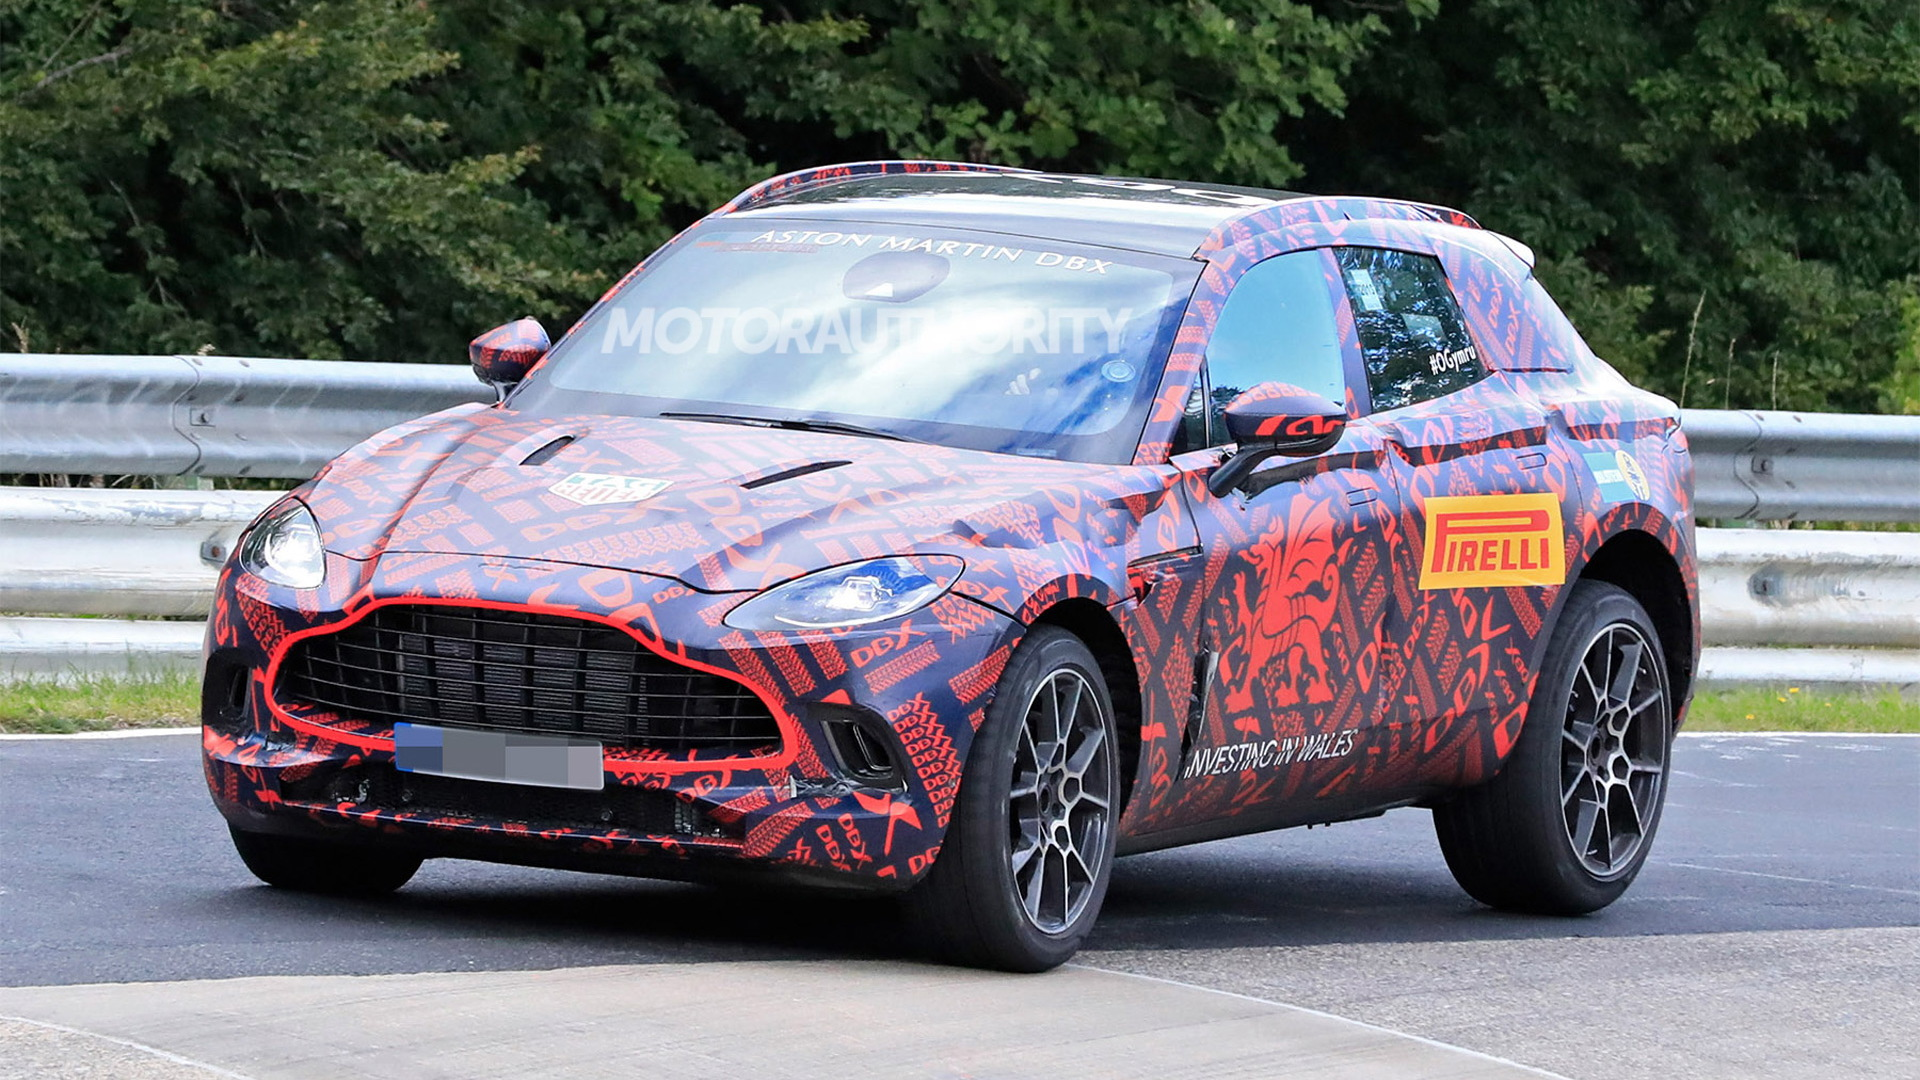 2020 Aston Martin DBX spy shots - Photo credit: S. Baldauf/SB-Medien